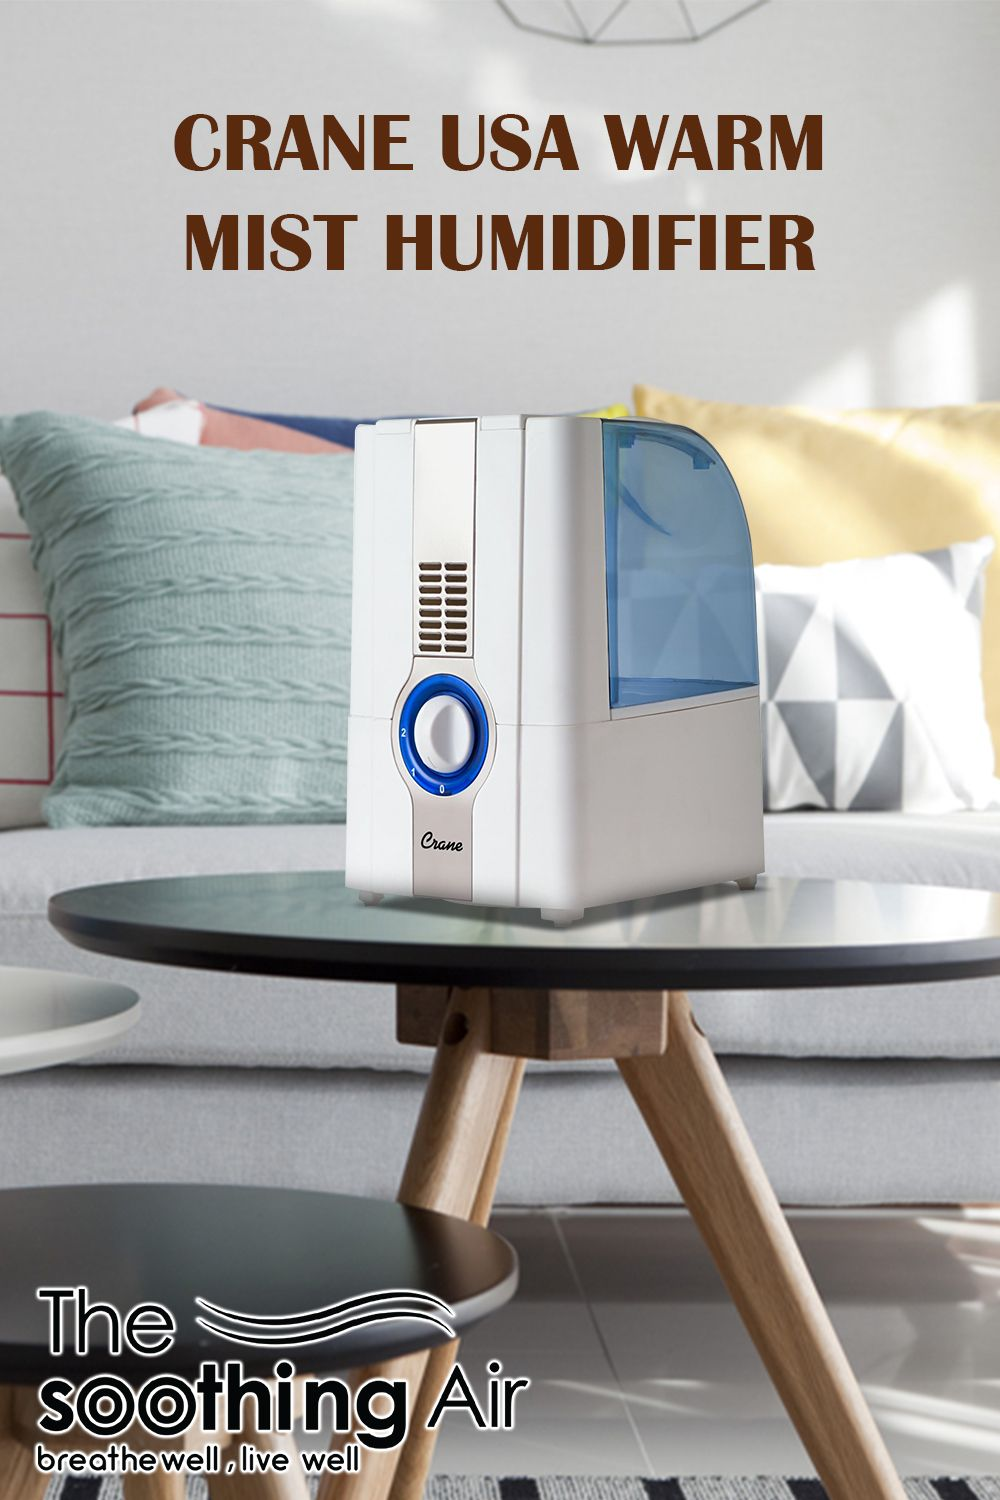 Top 5 Warm Mist Humidifiers (April 2020) Reviews & Buyers